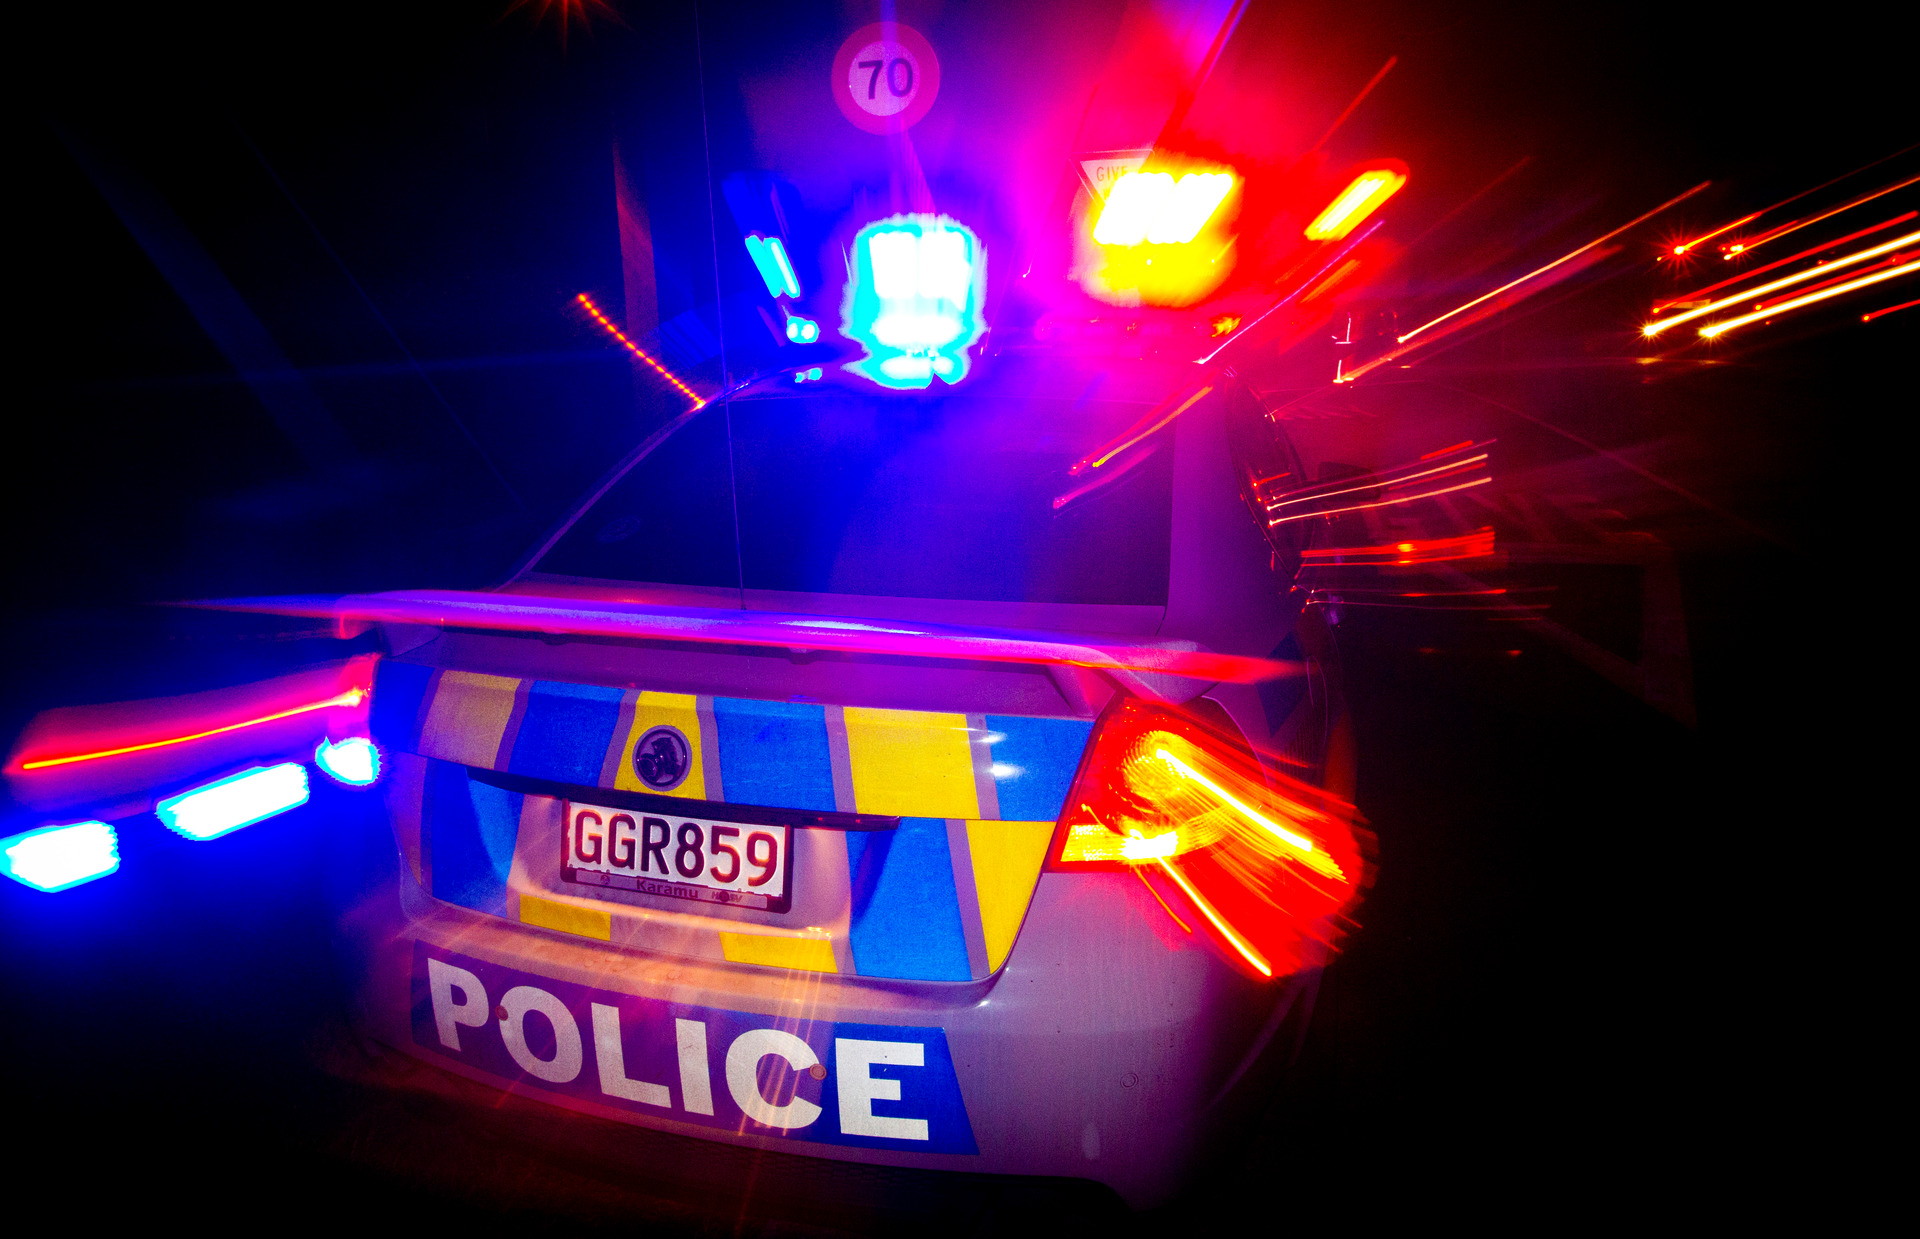 Man found dead in Auckland motel room after report of injury